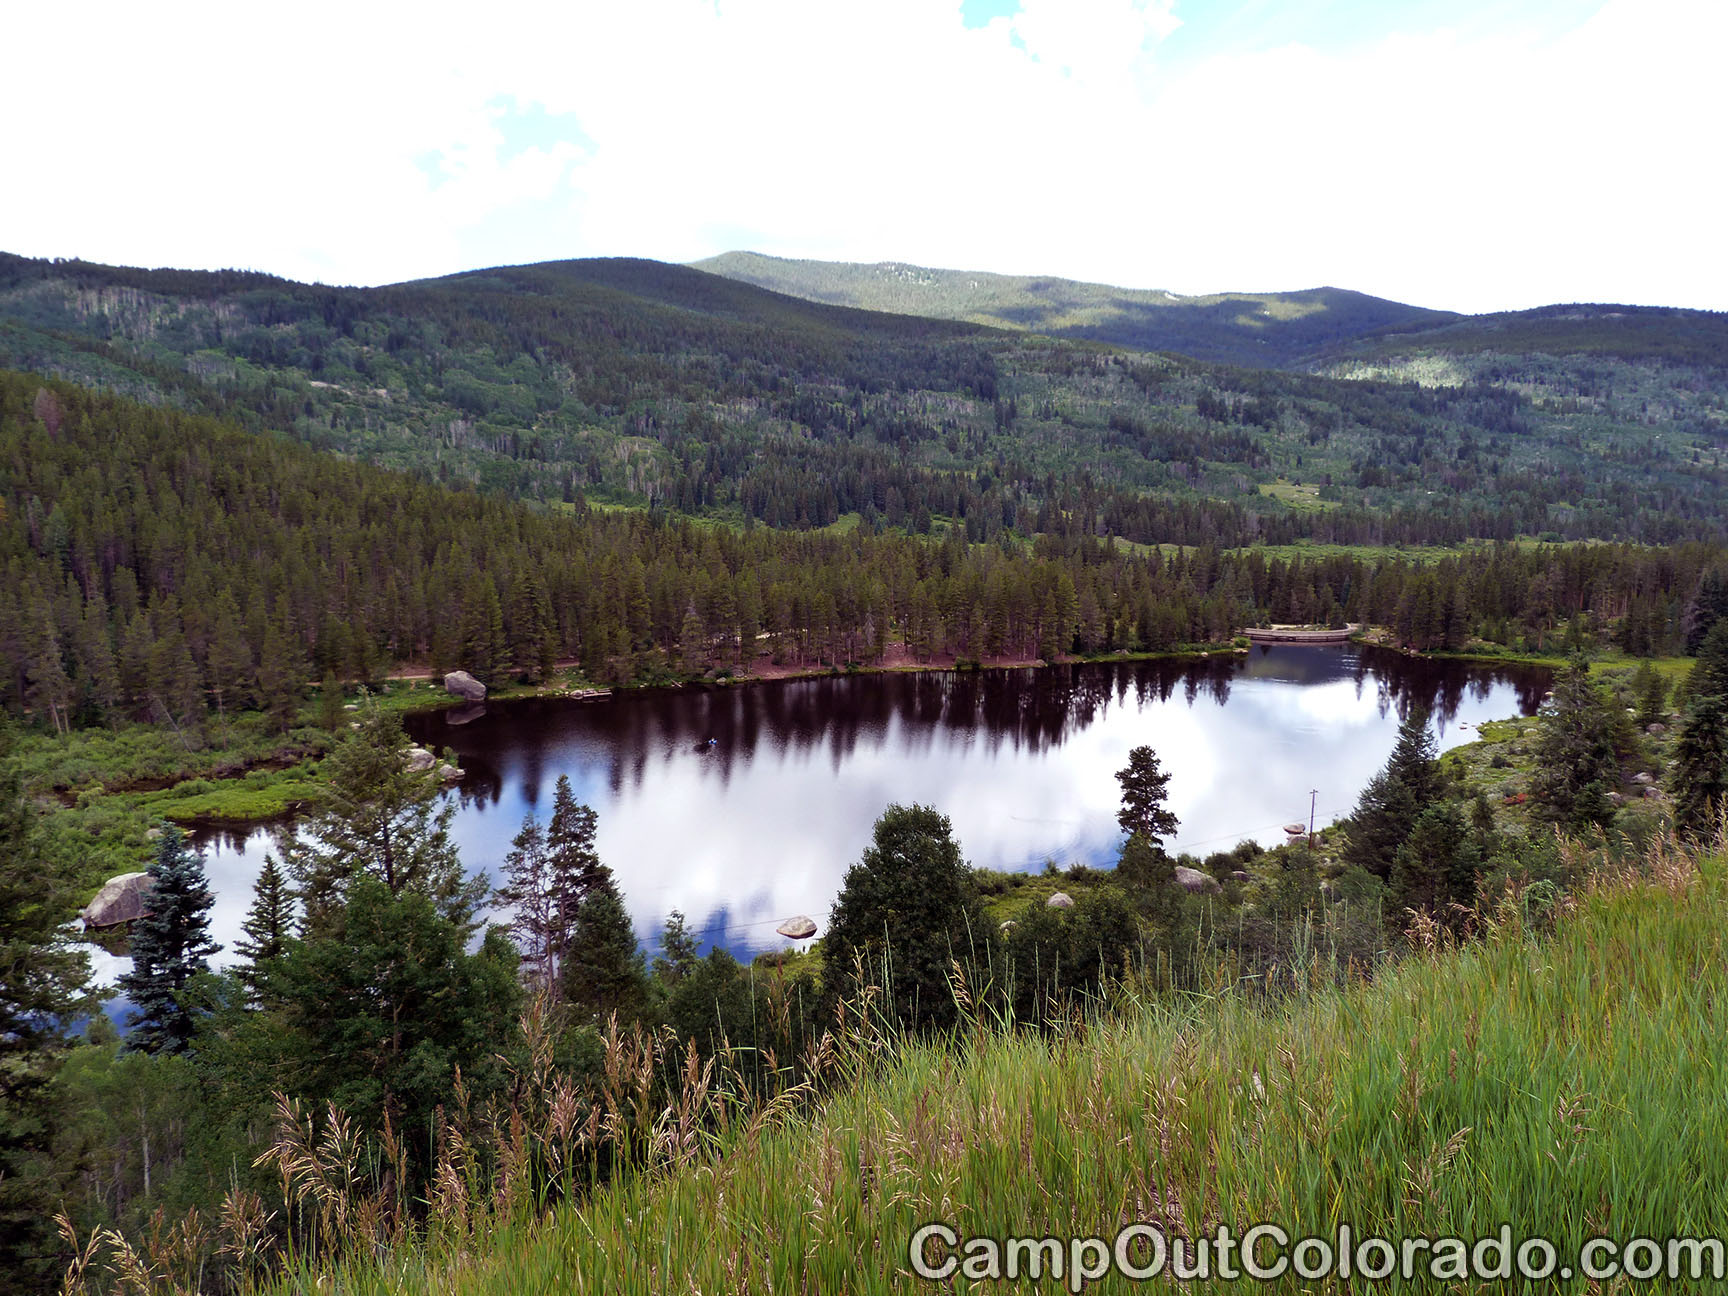 Camping Review of Chapman Dam Campground